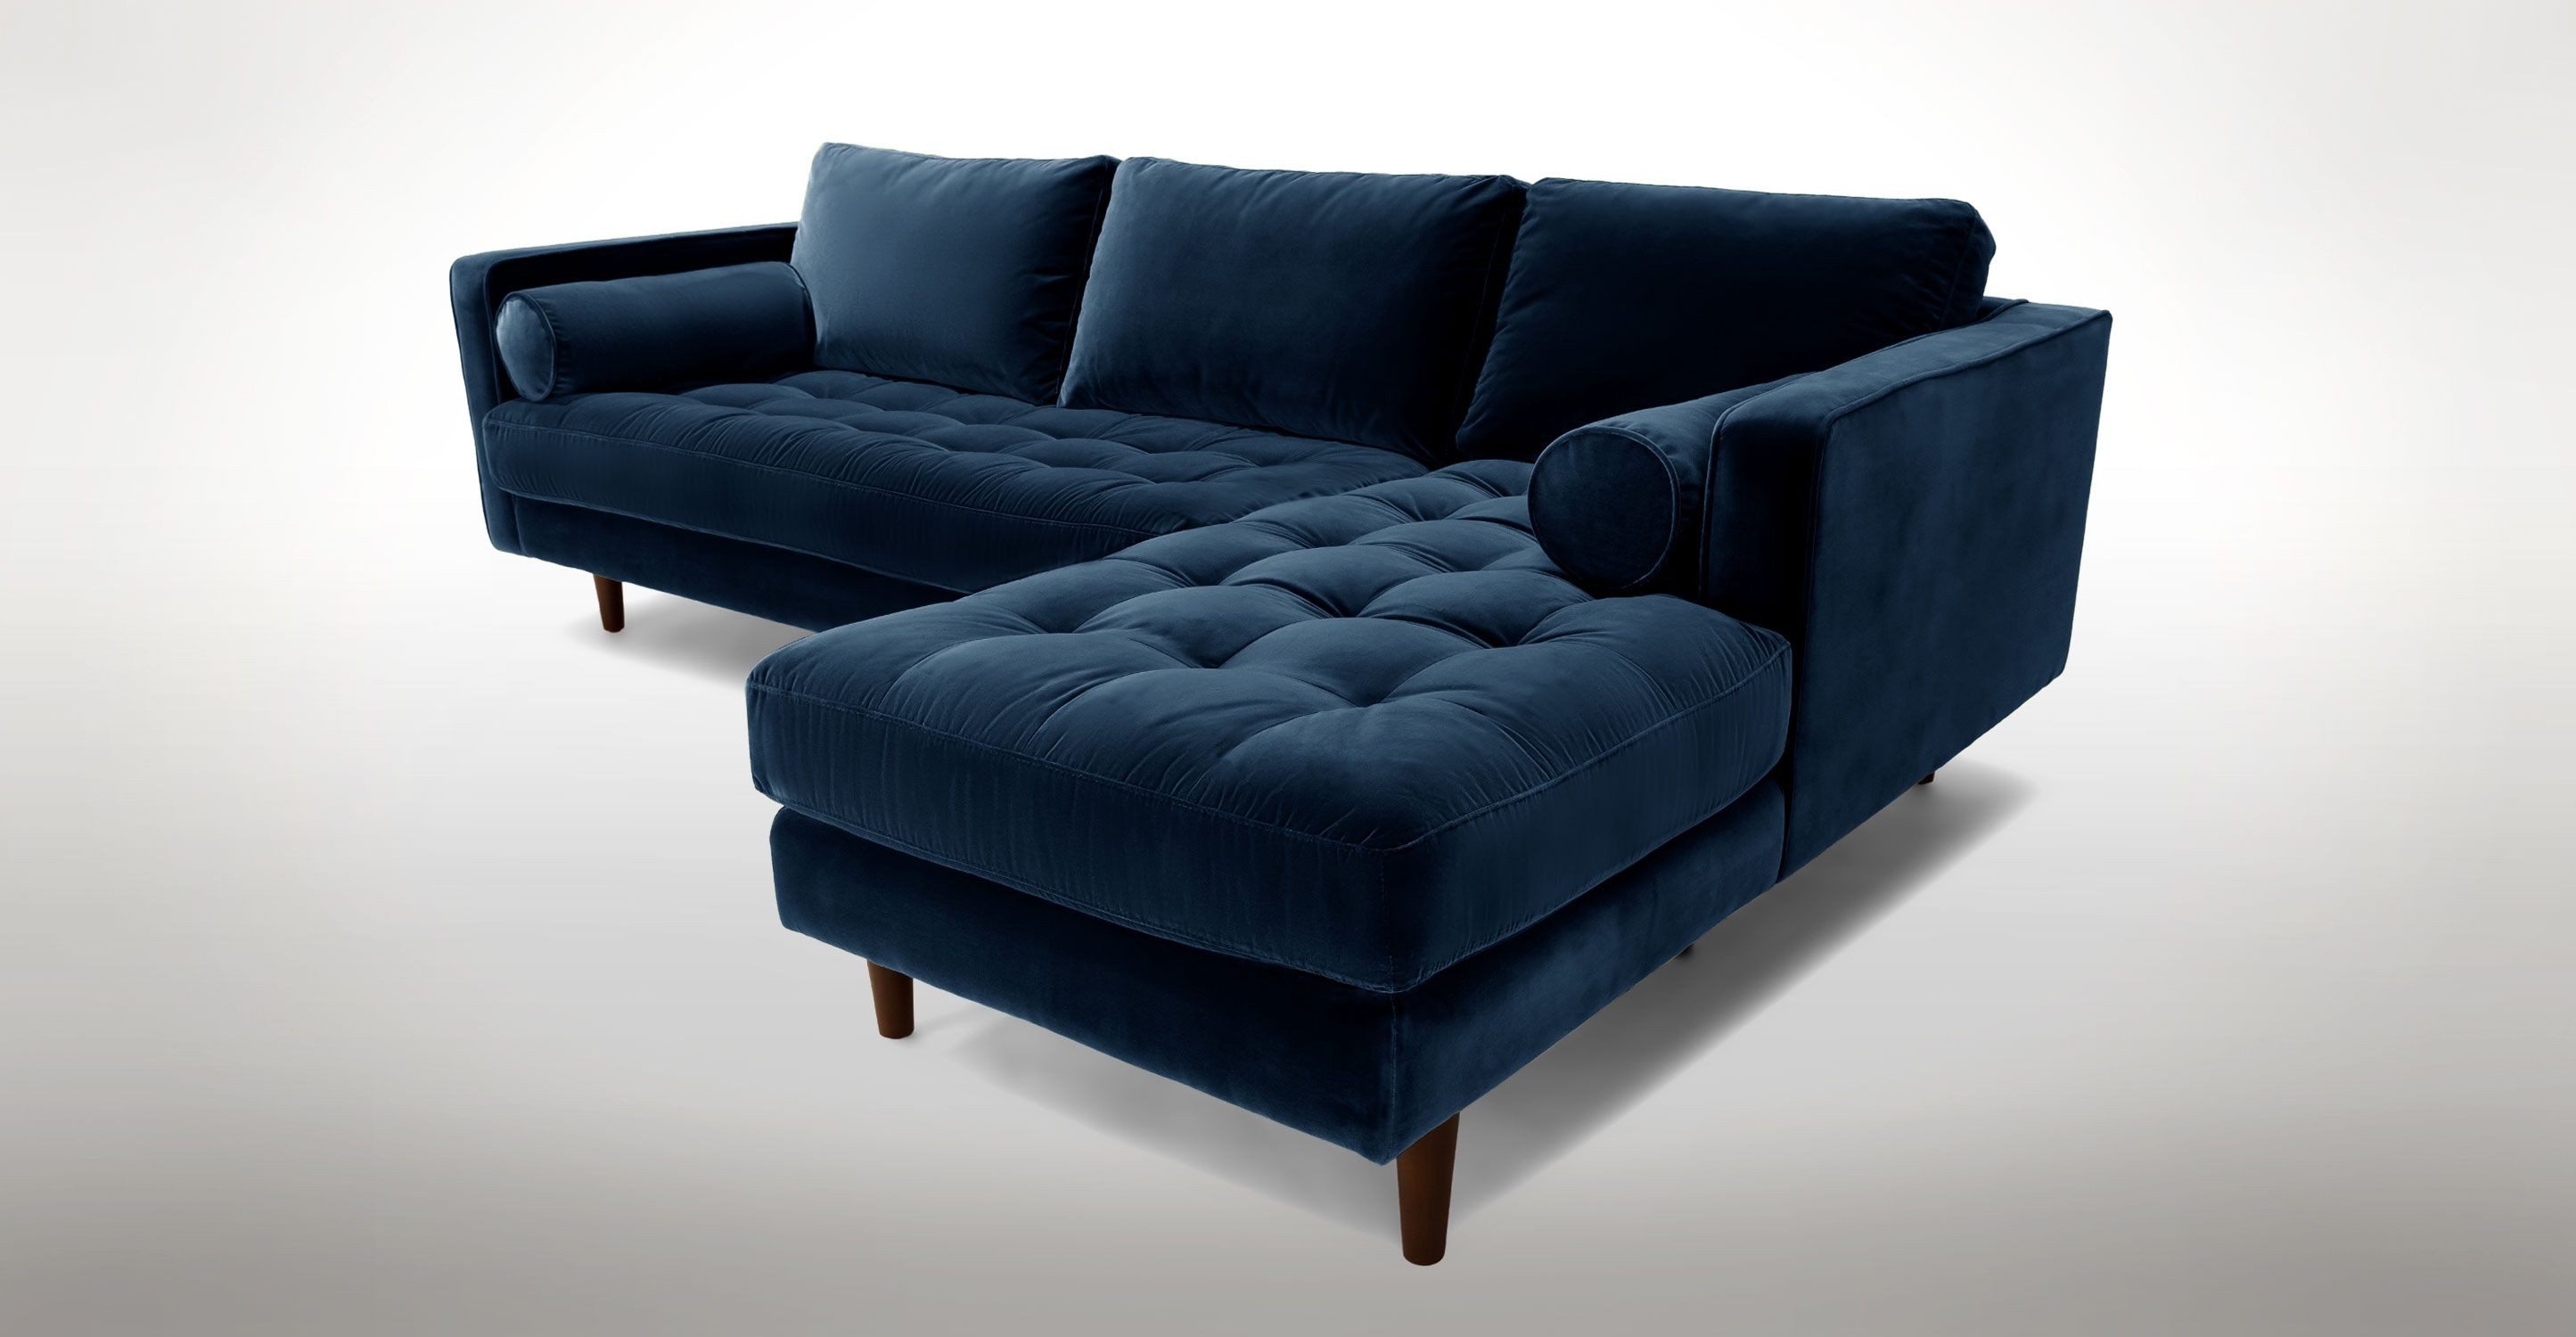 Sven Cascadia Blue Right Sectional Sofa | Sectional sofa ...